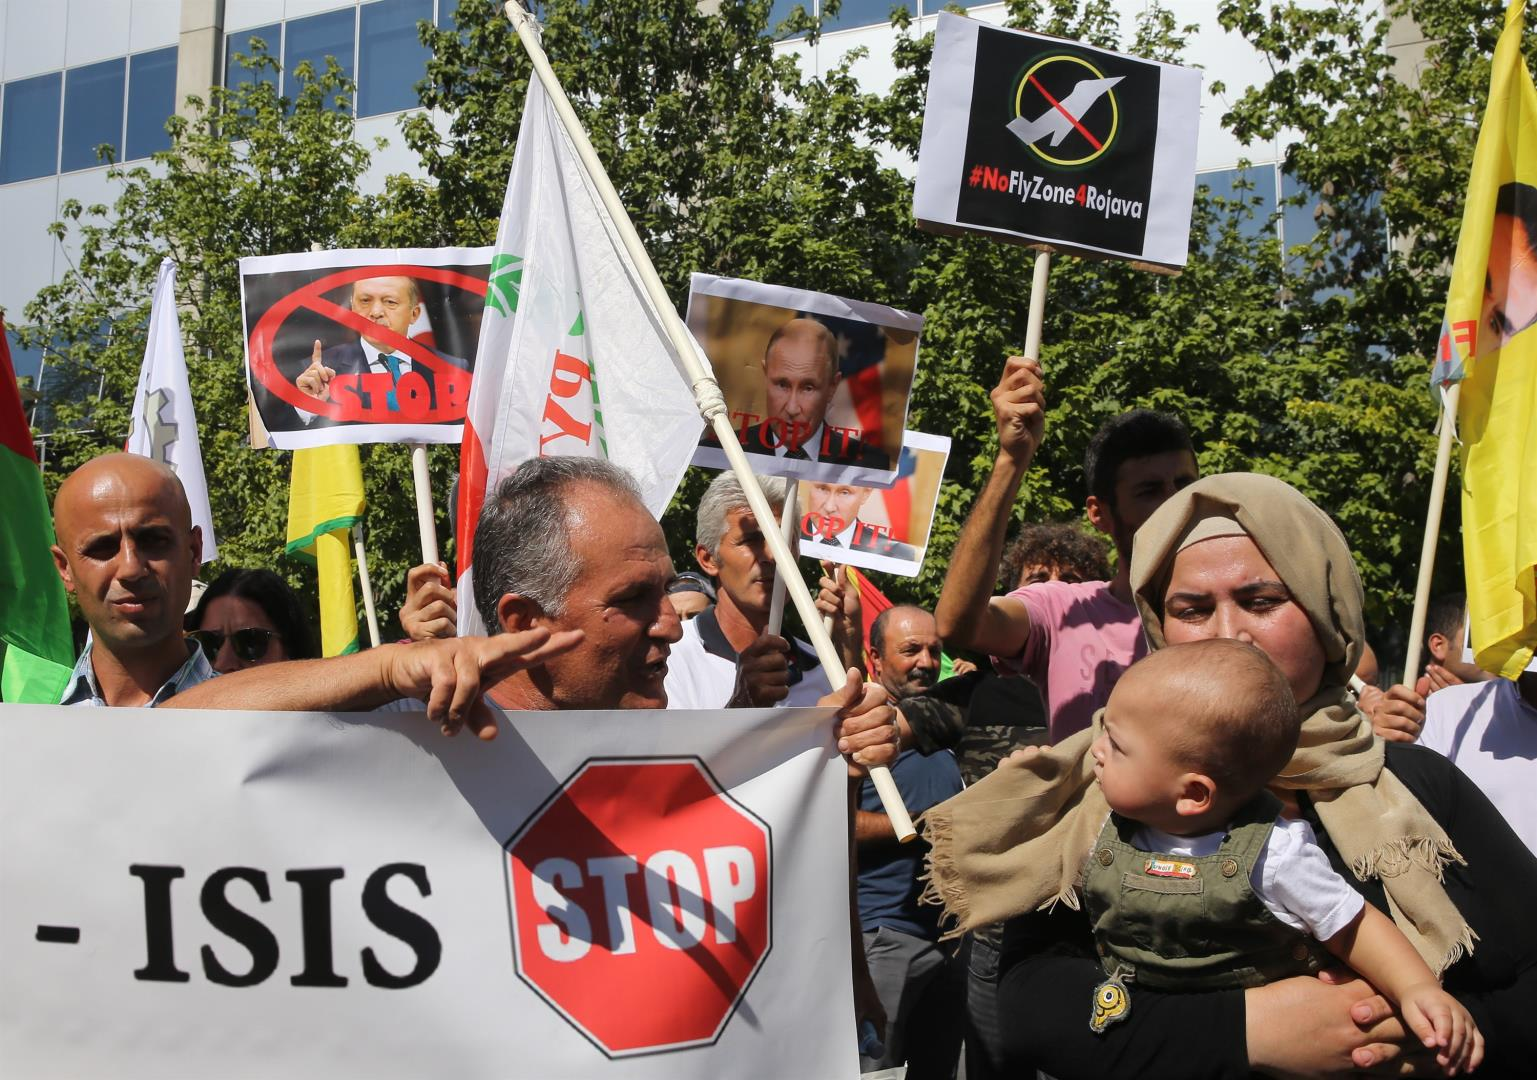 Demonstration of solidarity with the Kurdish people in Cyprus